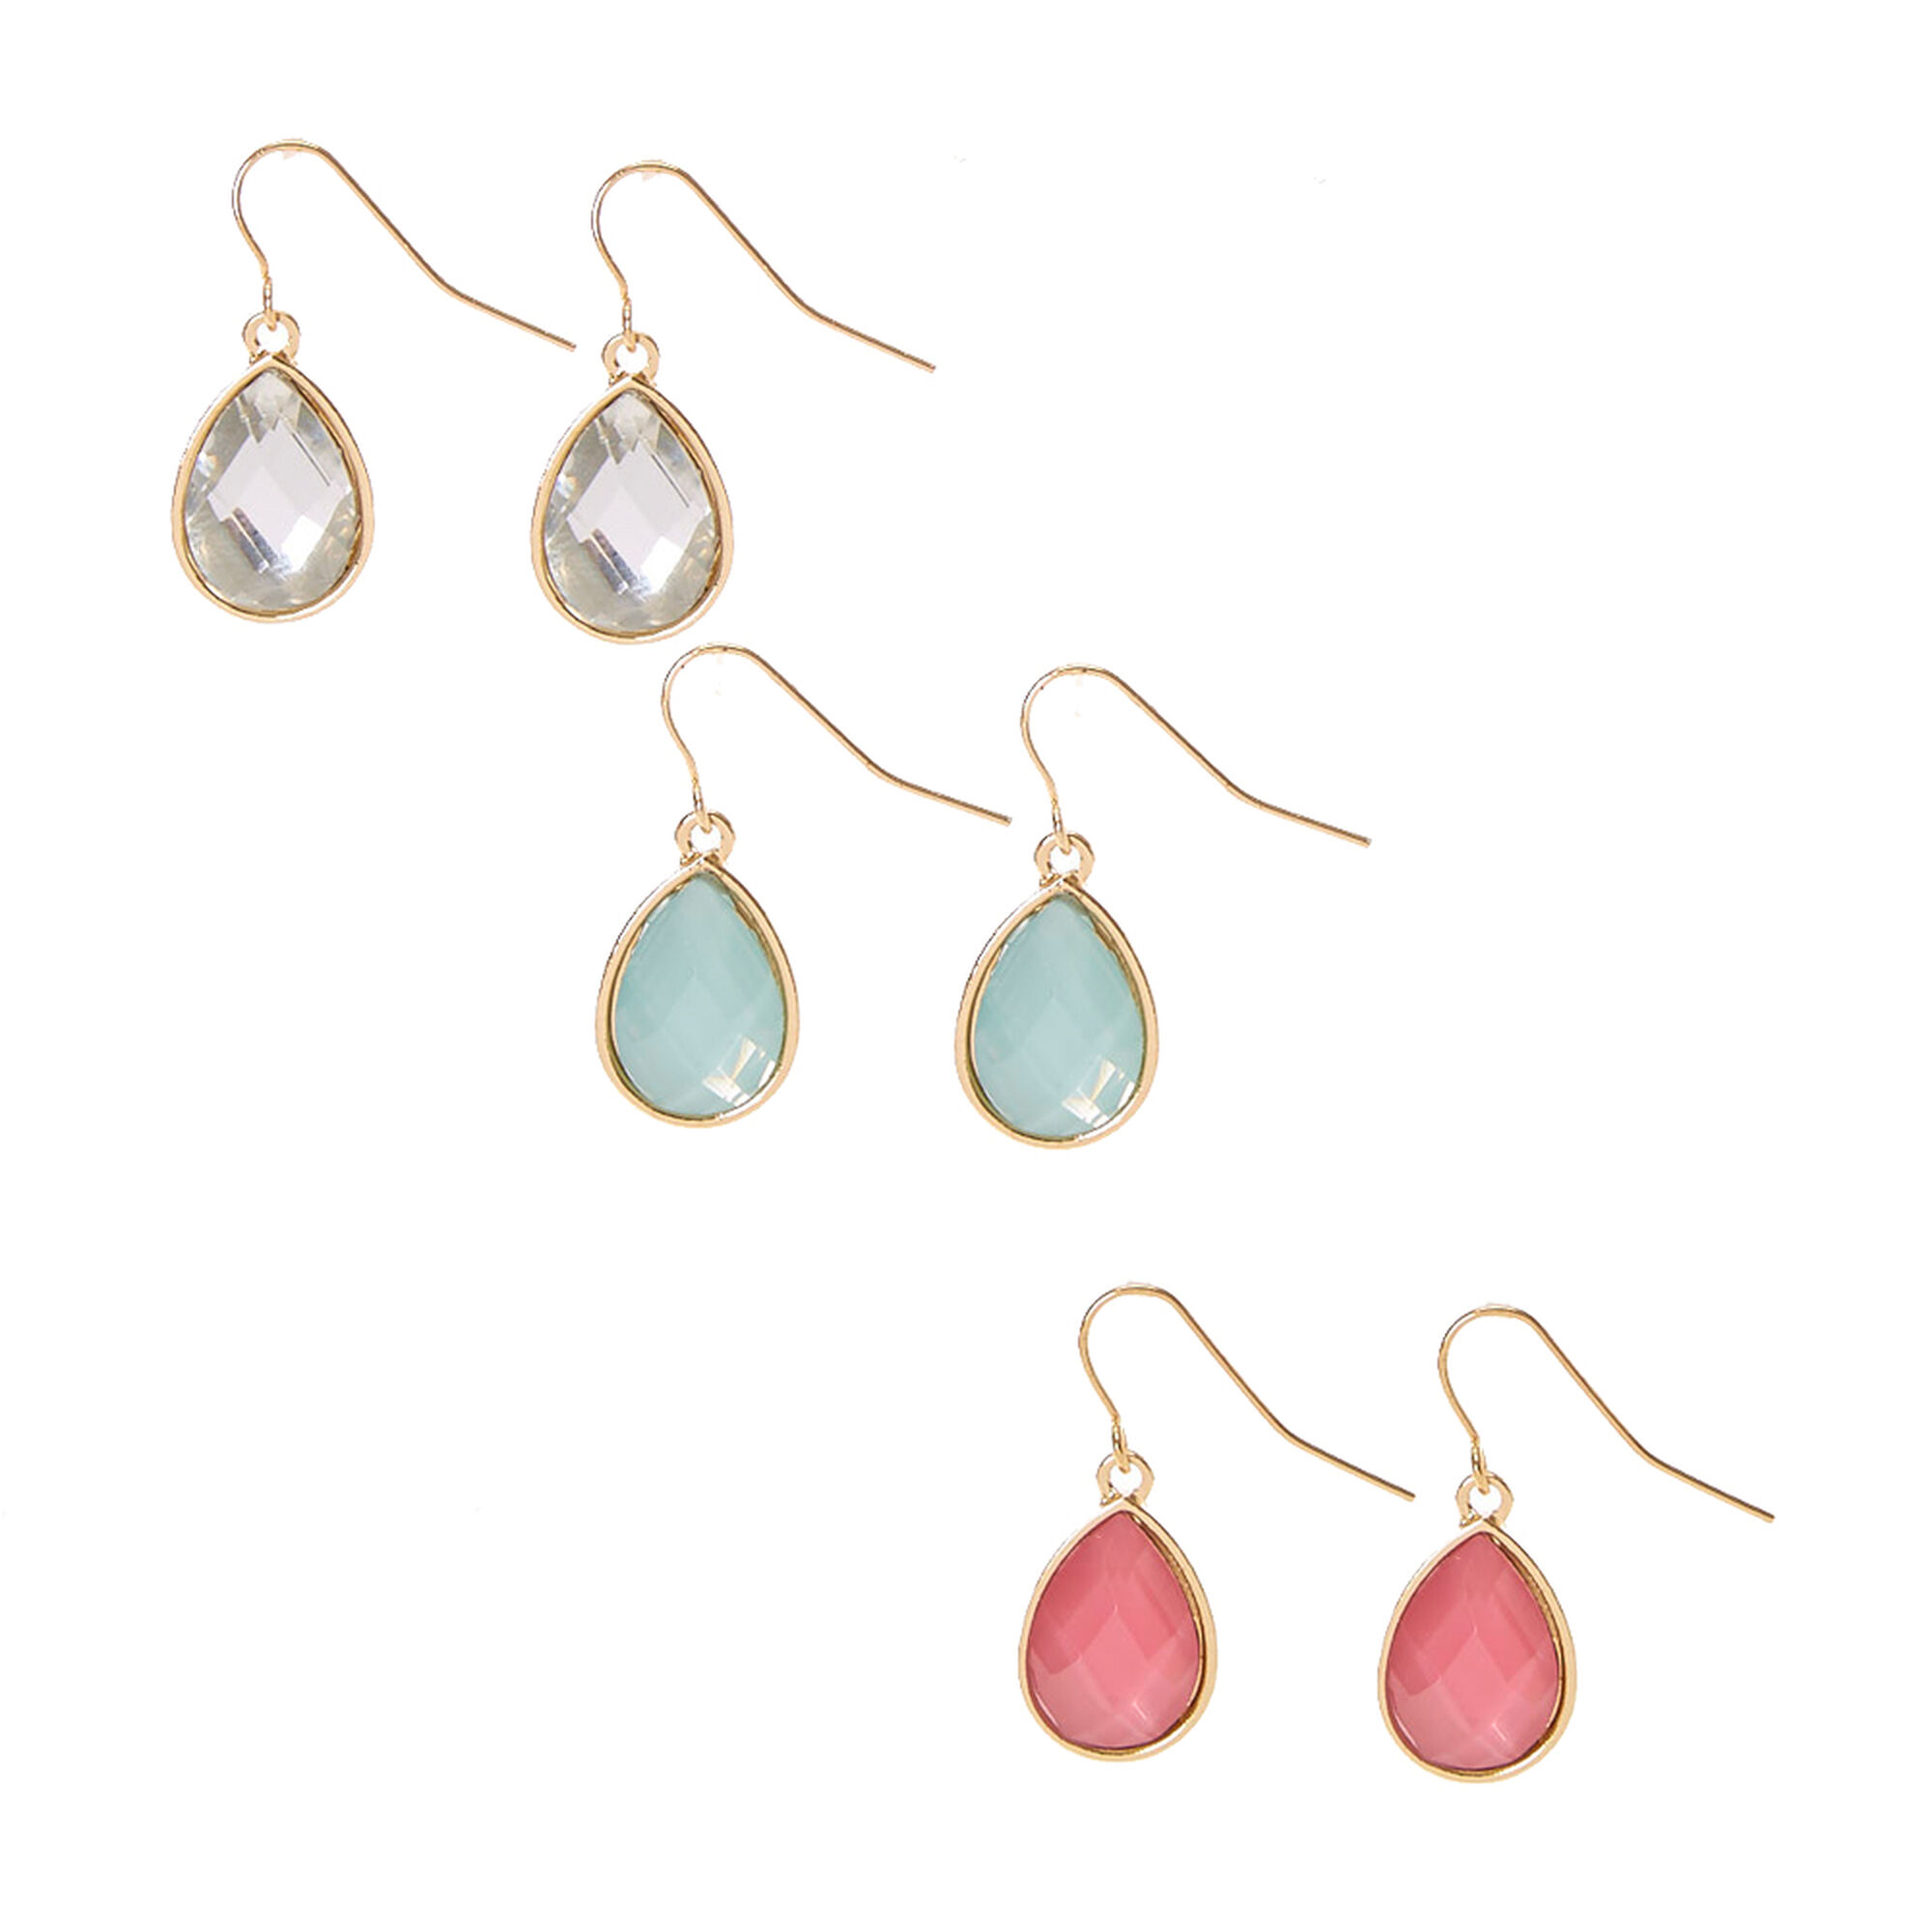 gem products earrings you a drop single ehsani melody are crystal